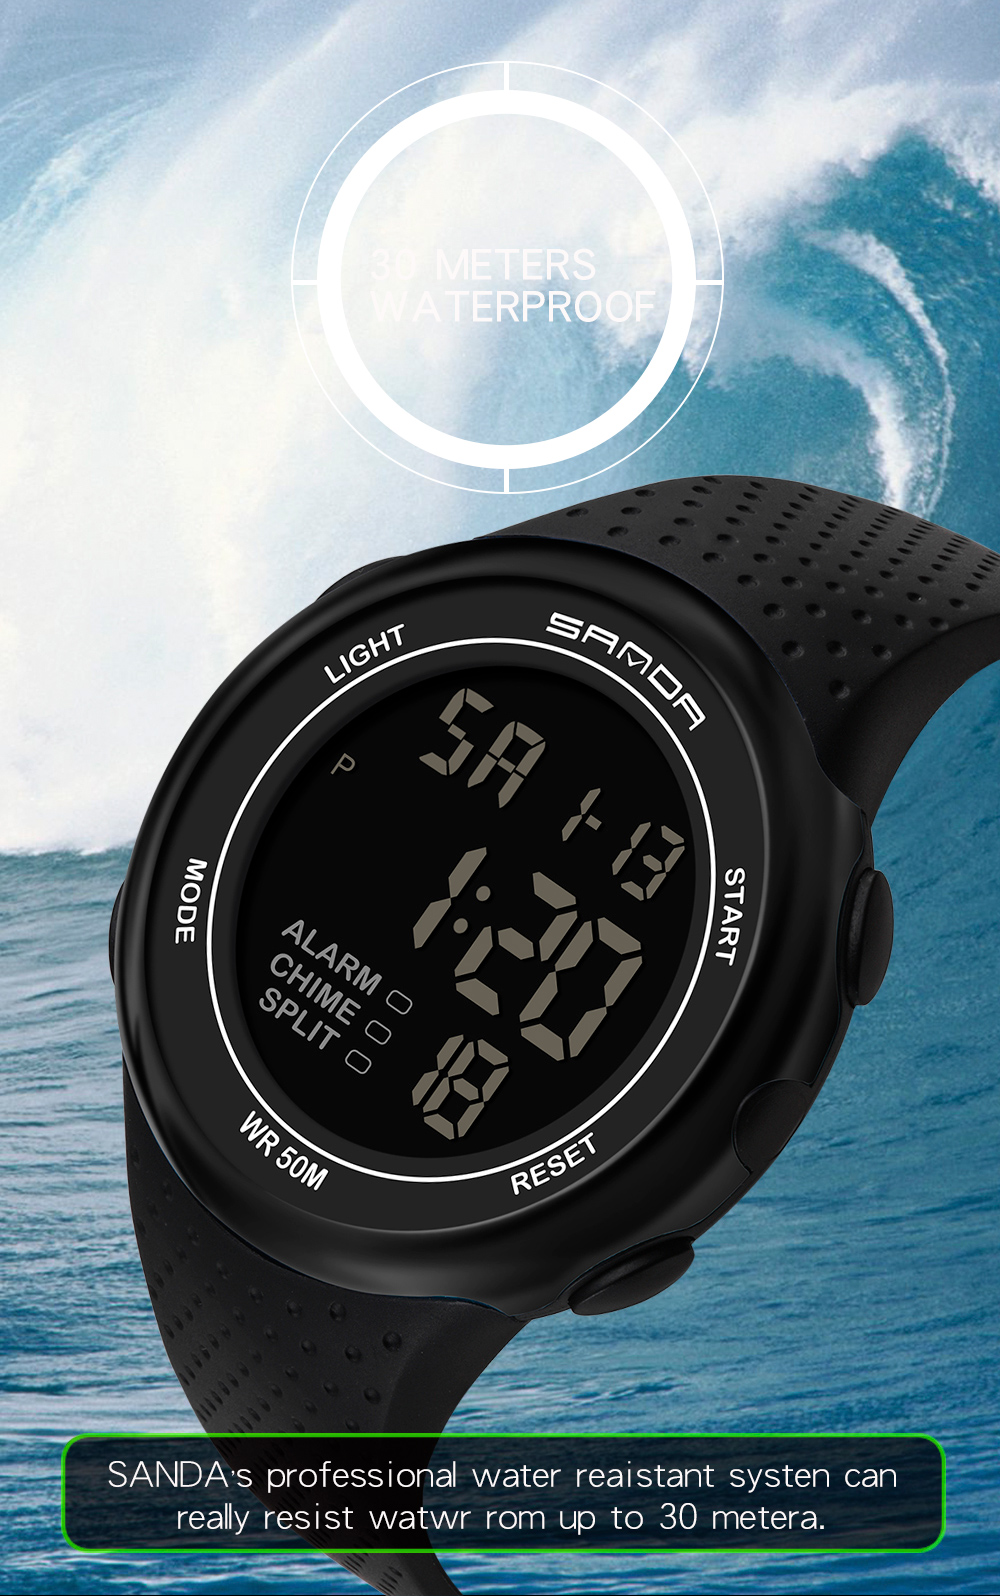 IsMyStore: Waterproof Digital Watch Men Alarm-clock Date-week-display Sports Electronic Watches Luminacence Modes relogio masculino SANDA